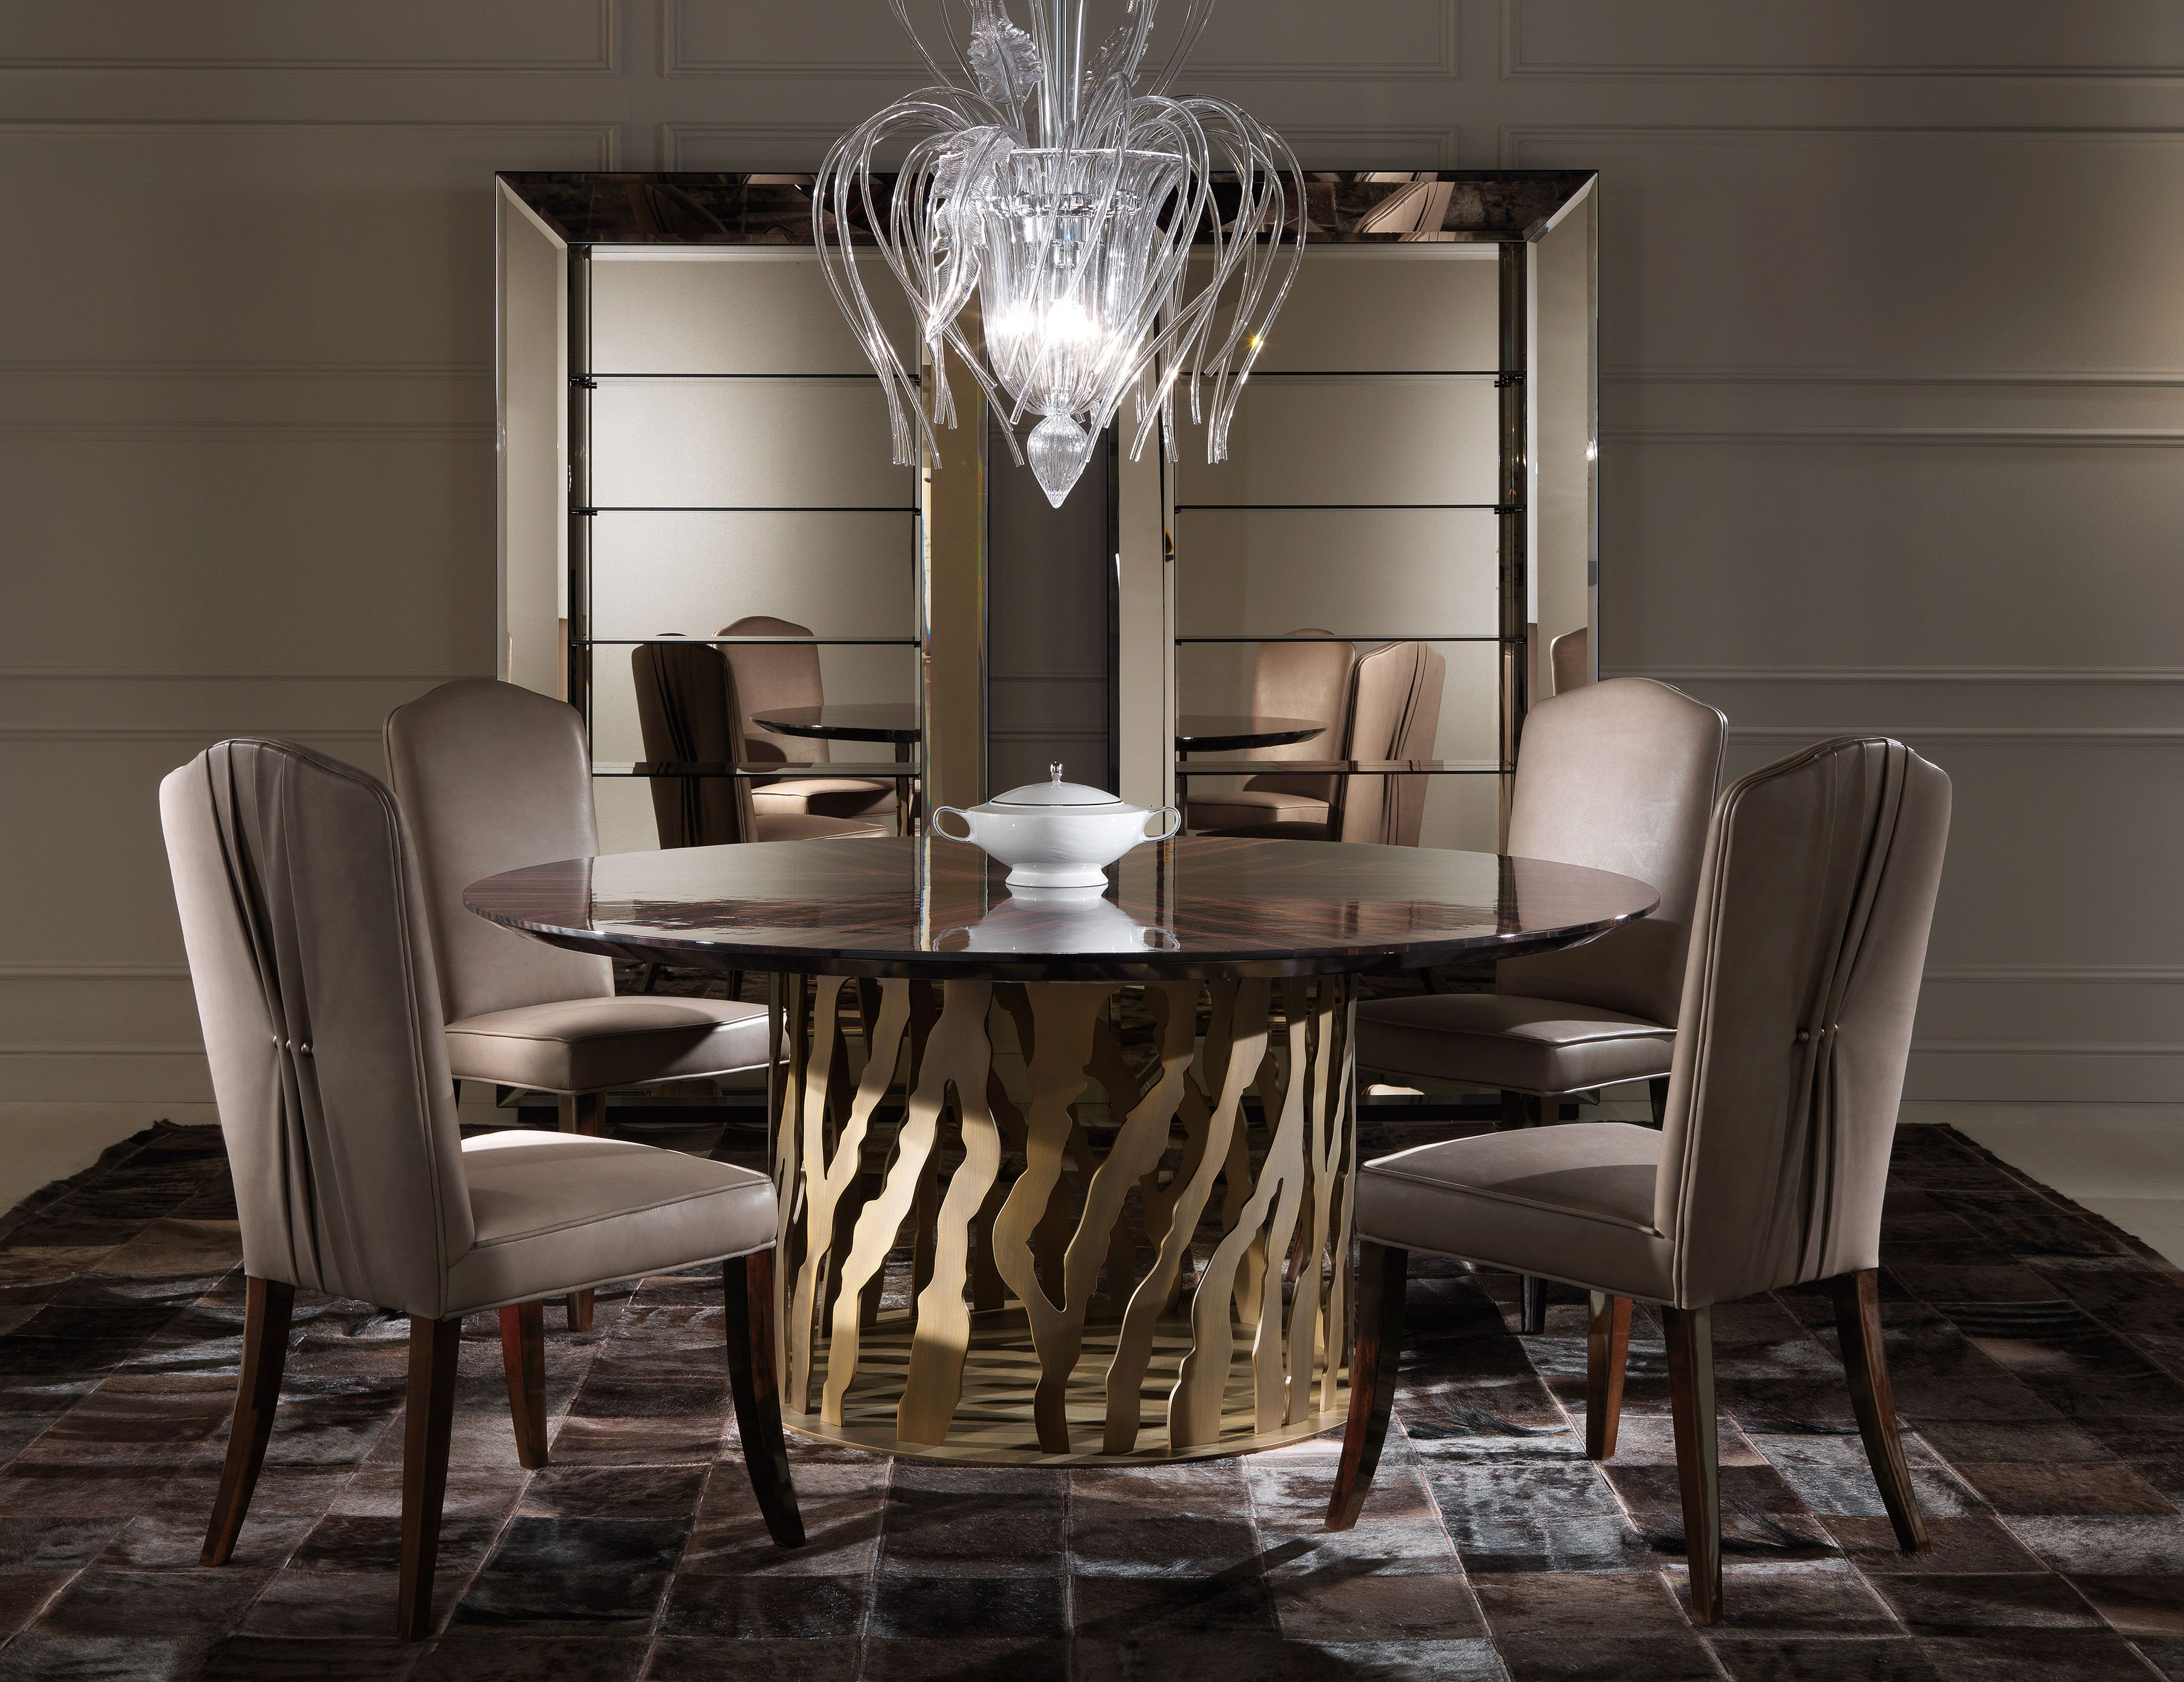 Contemporary Round Dining Room Tables Gorgeous Click To Close Image Click And Drag To Moveuse Arrow Keys For Decorating Design